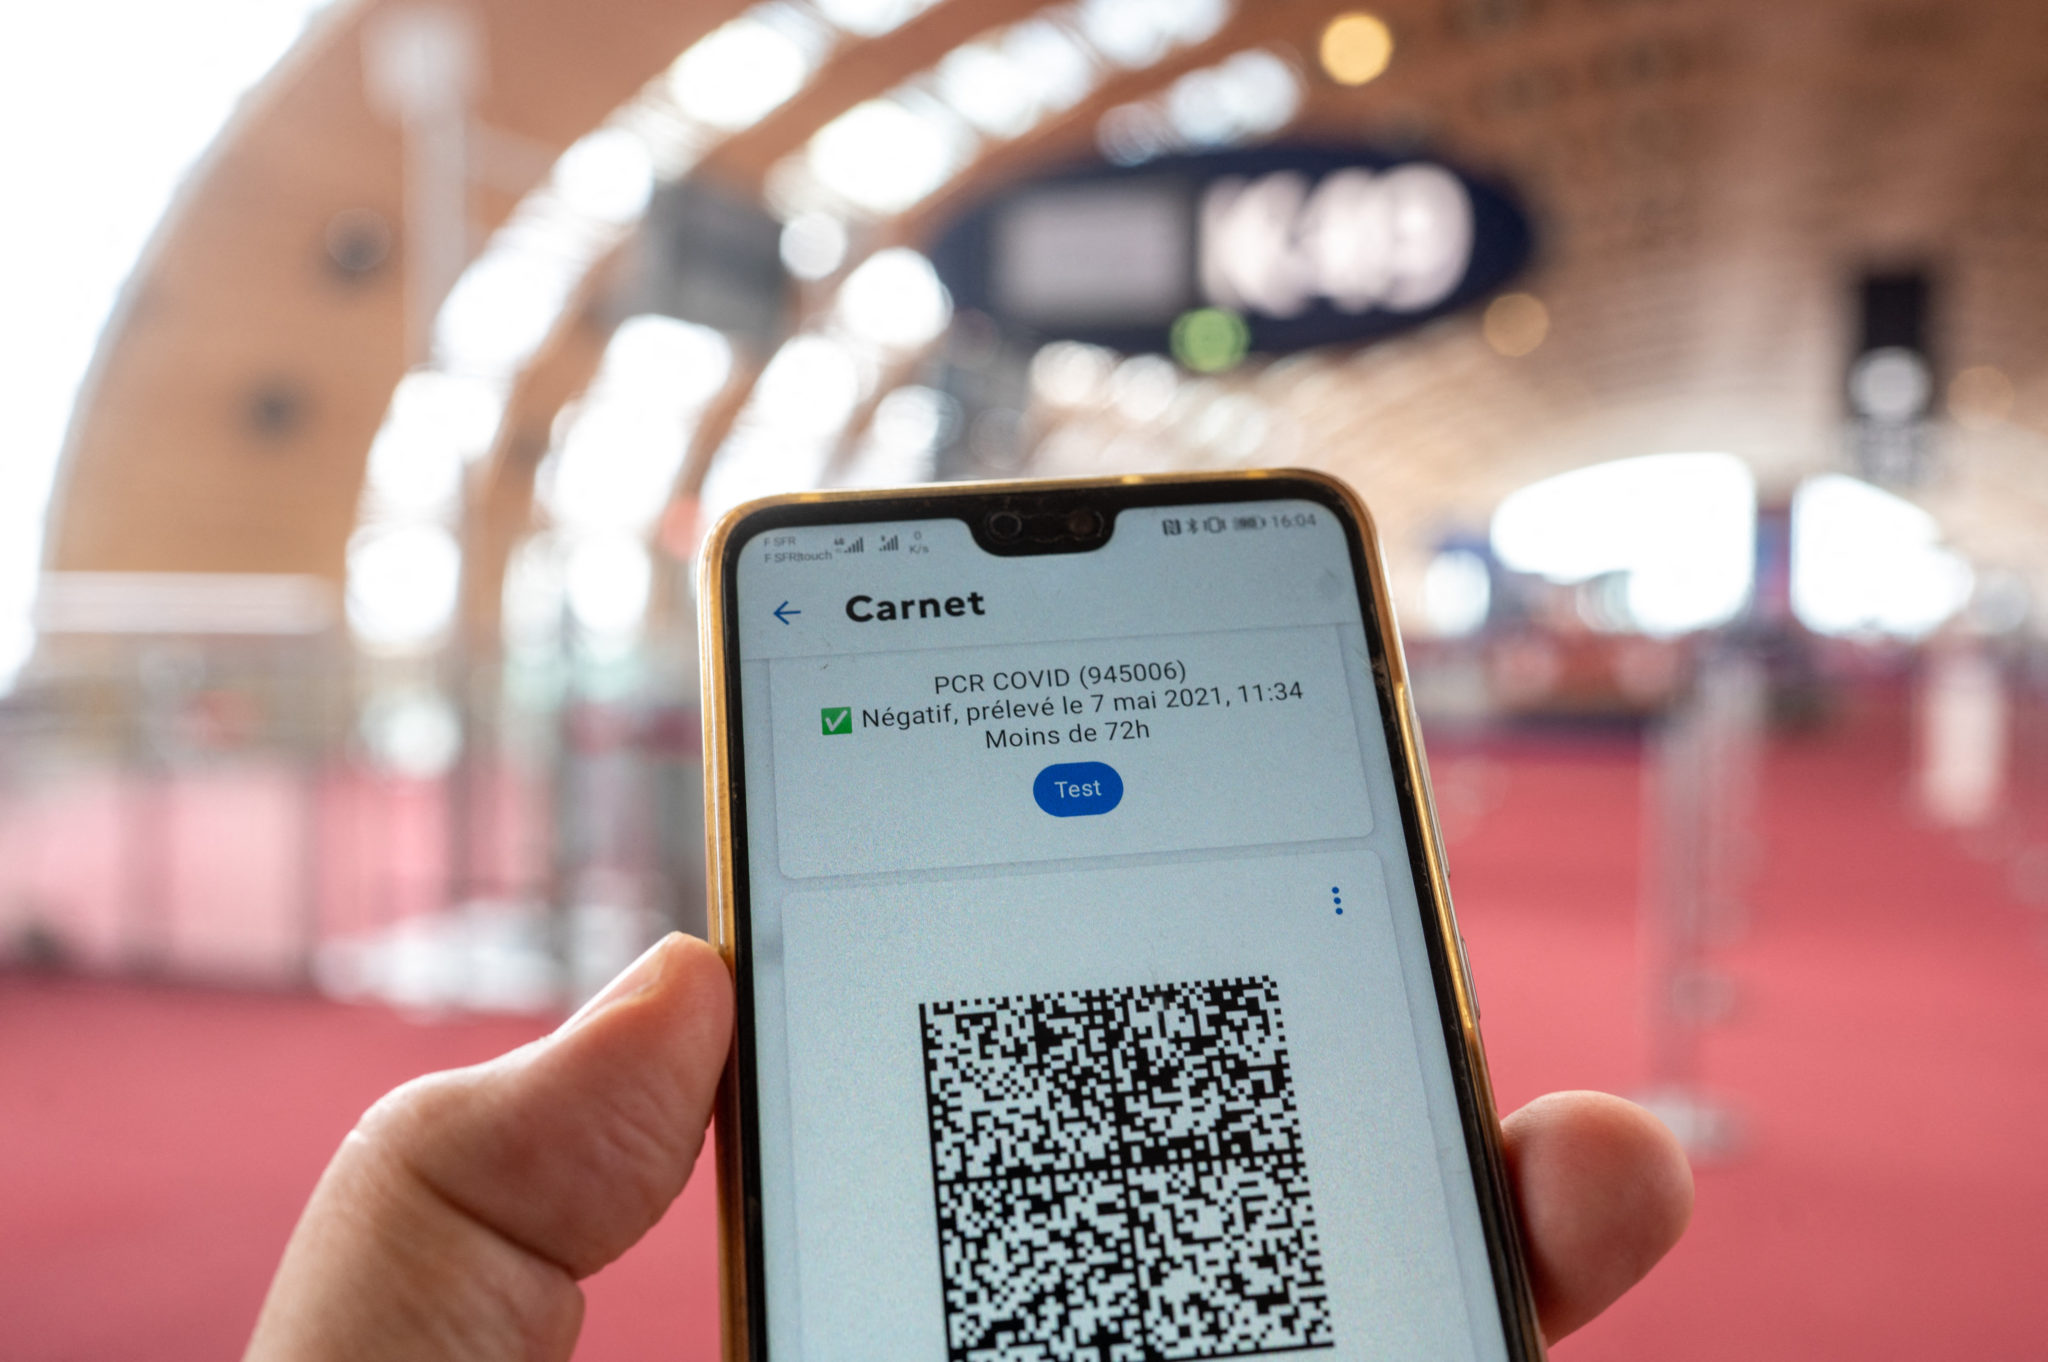 A QR code presenting vaccination certificate, as well as recent PCR test results, is shown on smartphone at Charles de Gaulle Airport in Paris, France.